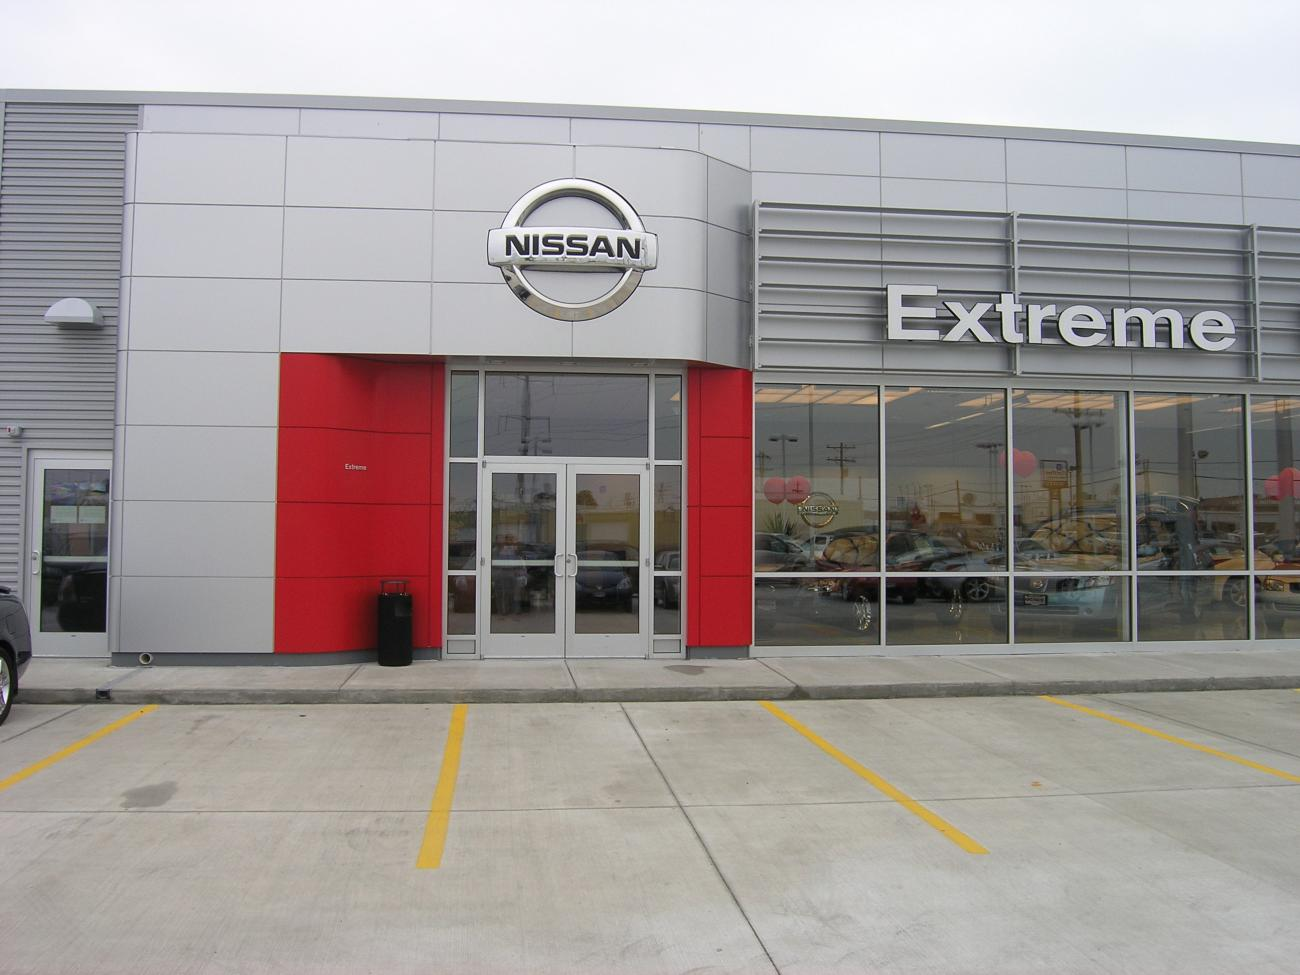 Extreme Nissan front